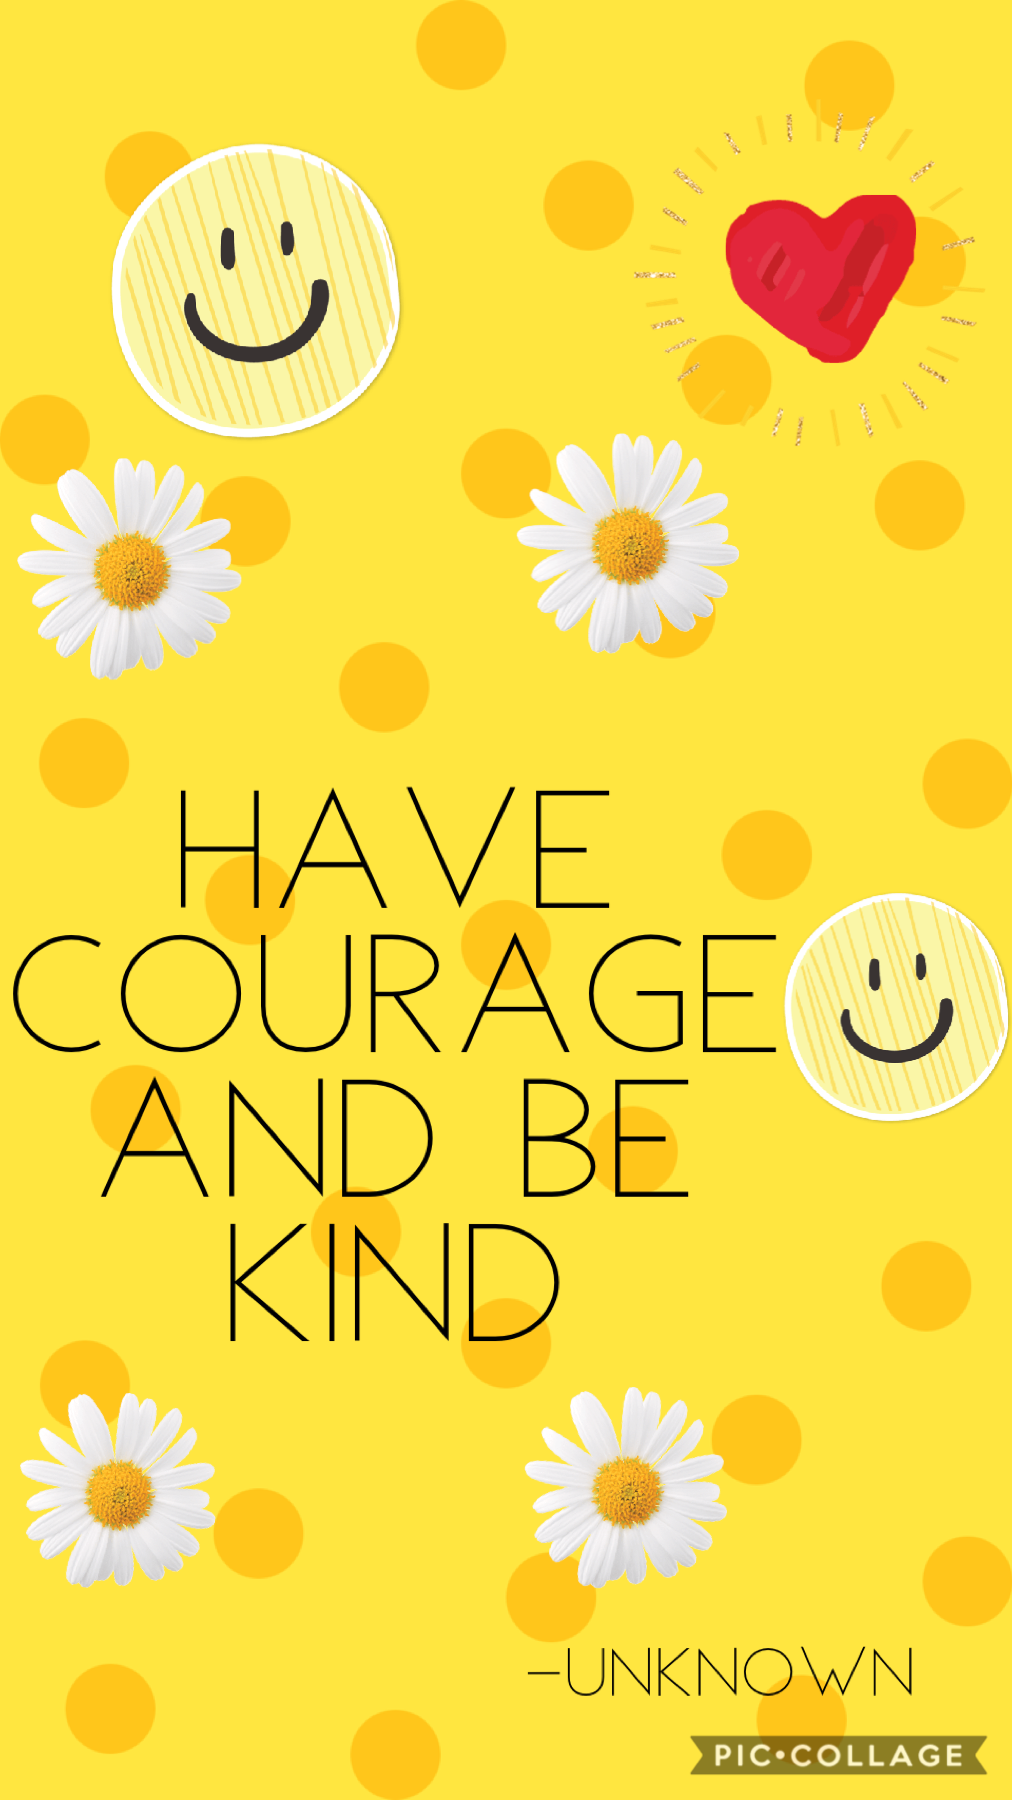 Have courage and be kind -unknown